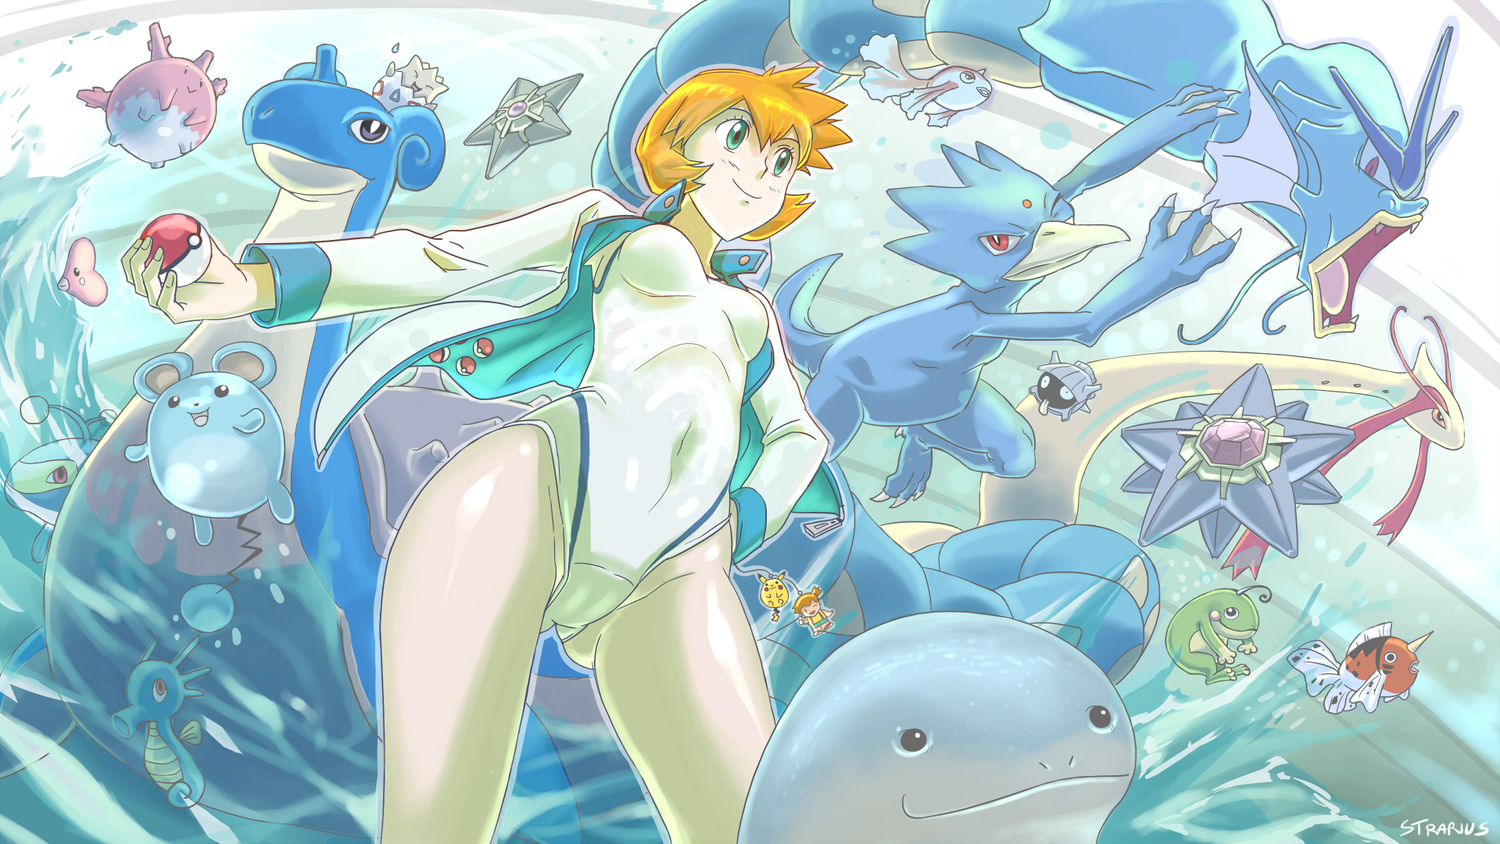 blue_eyes corsola goldeen golduck gyarados horsea kasumi_(pokemon) lanturn lapras luvdisc marill milotic orange_hair pikachu pokemon politoed quagsire seaking shellder short_hair starmie staryu strarius swimsuit togepi water